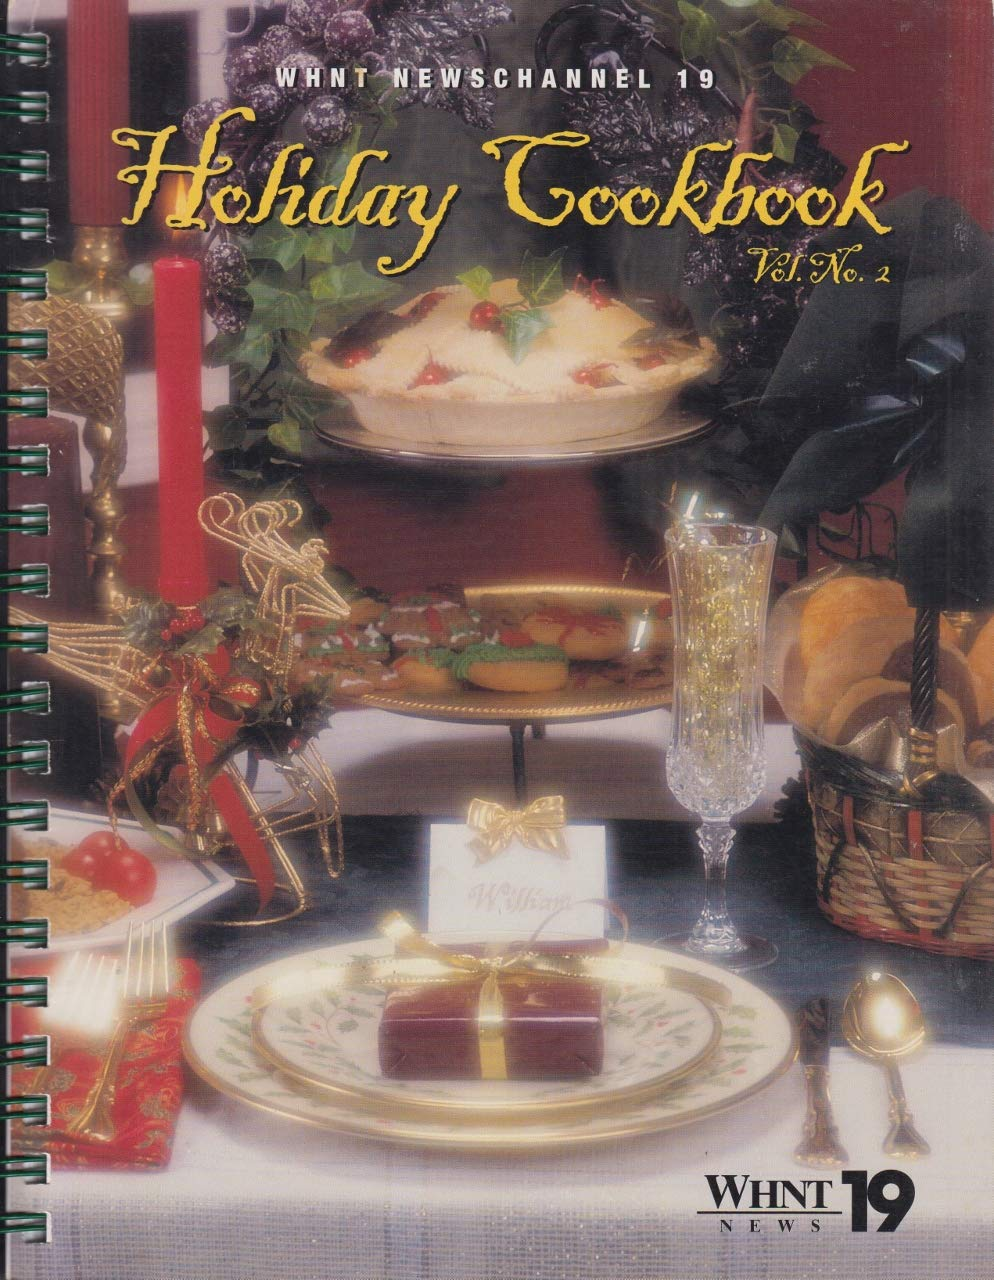 Holiday Cookbook Volume 2 - WHNT News Channel 10 of the